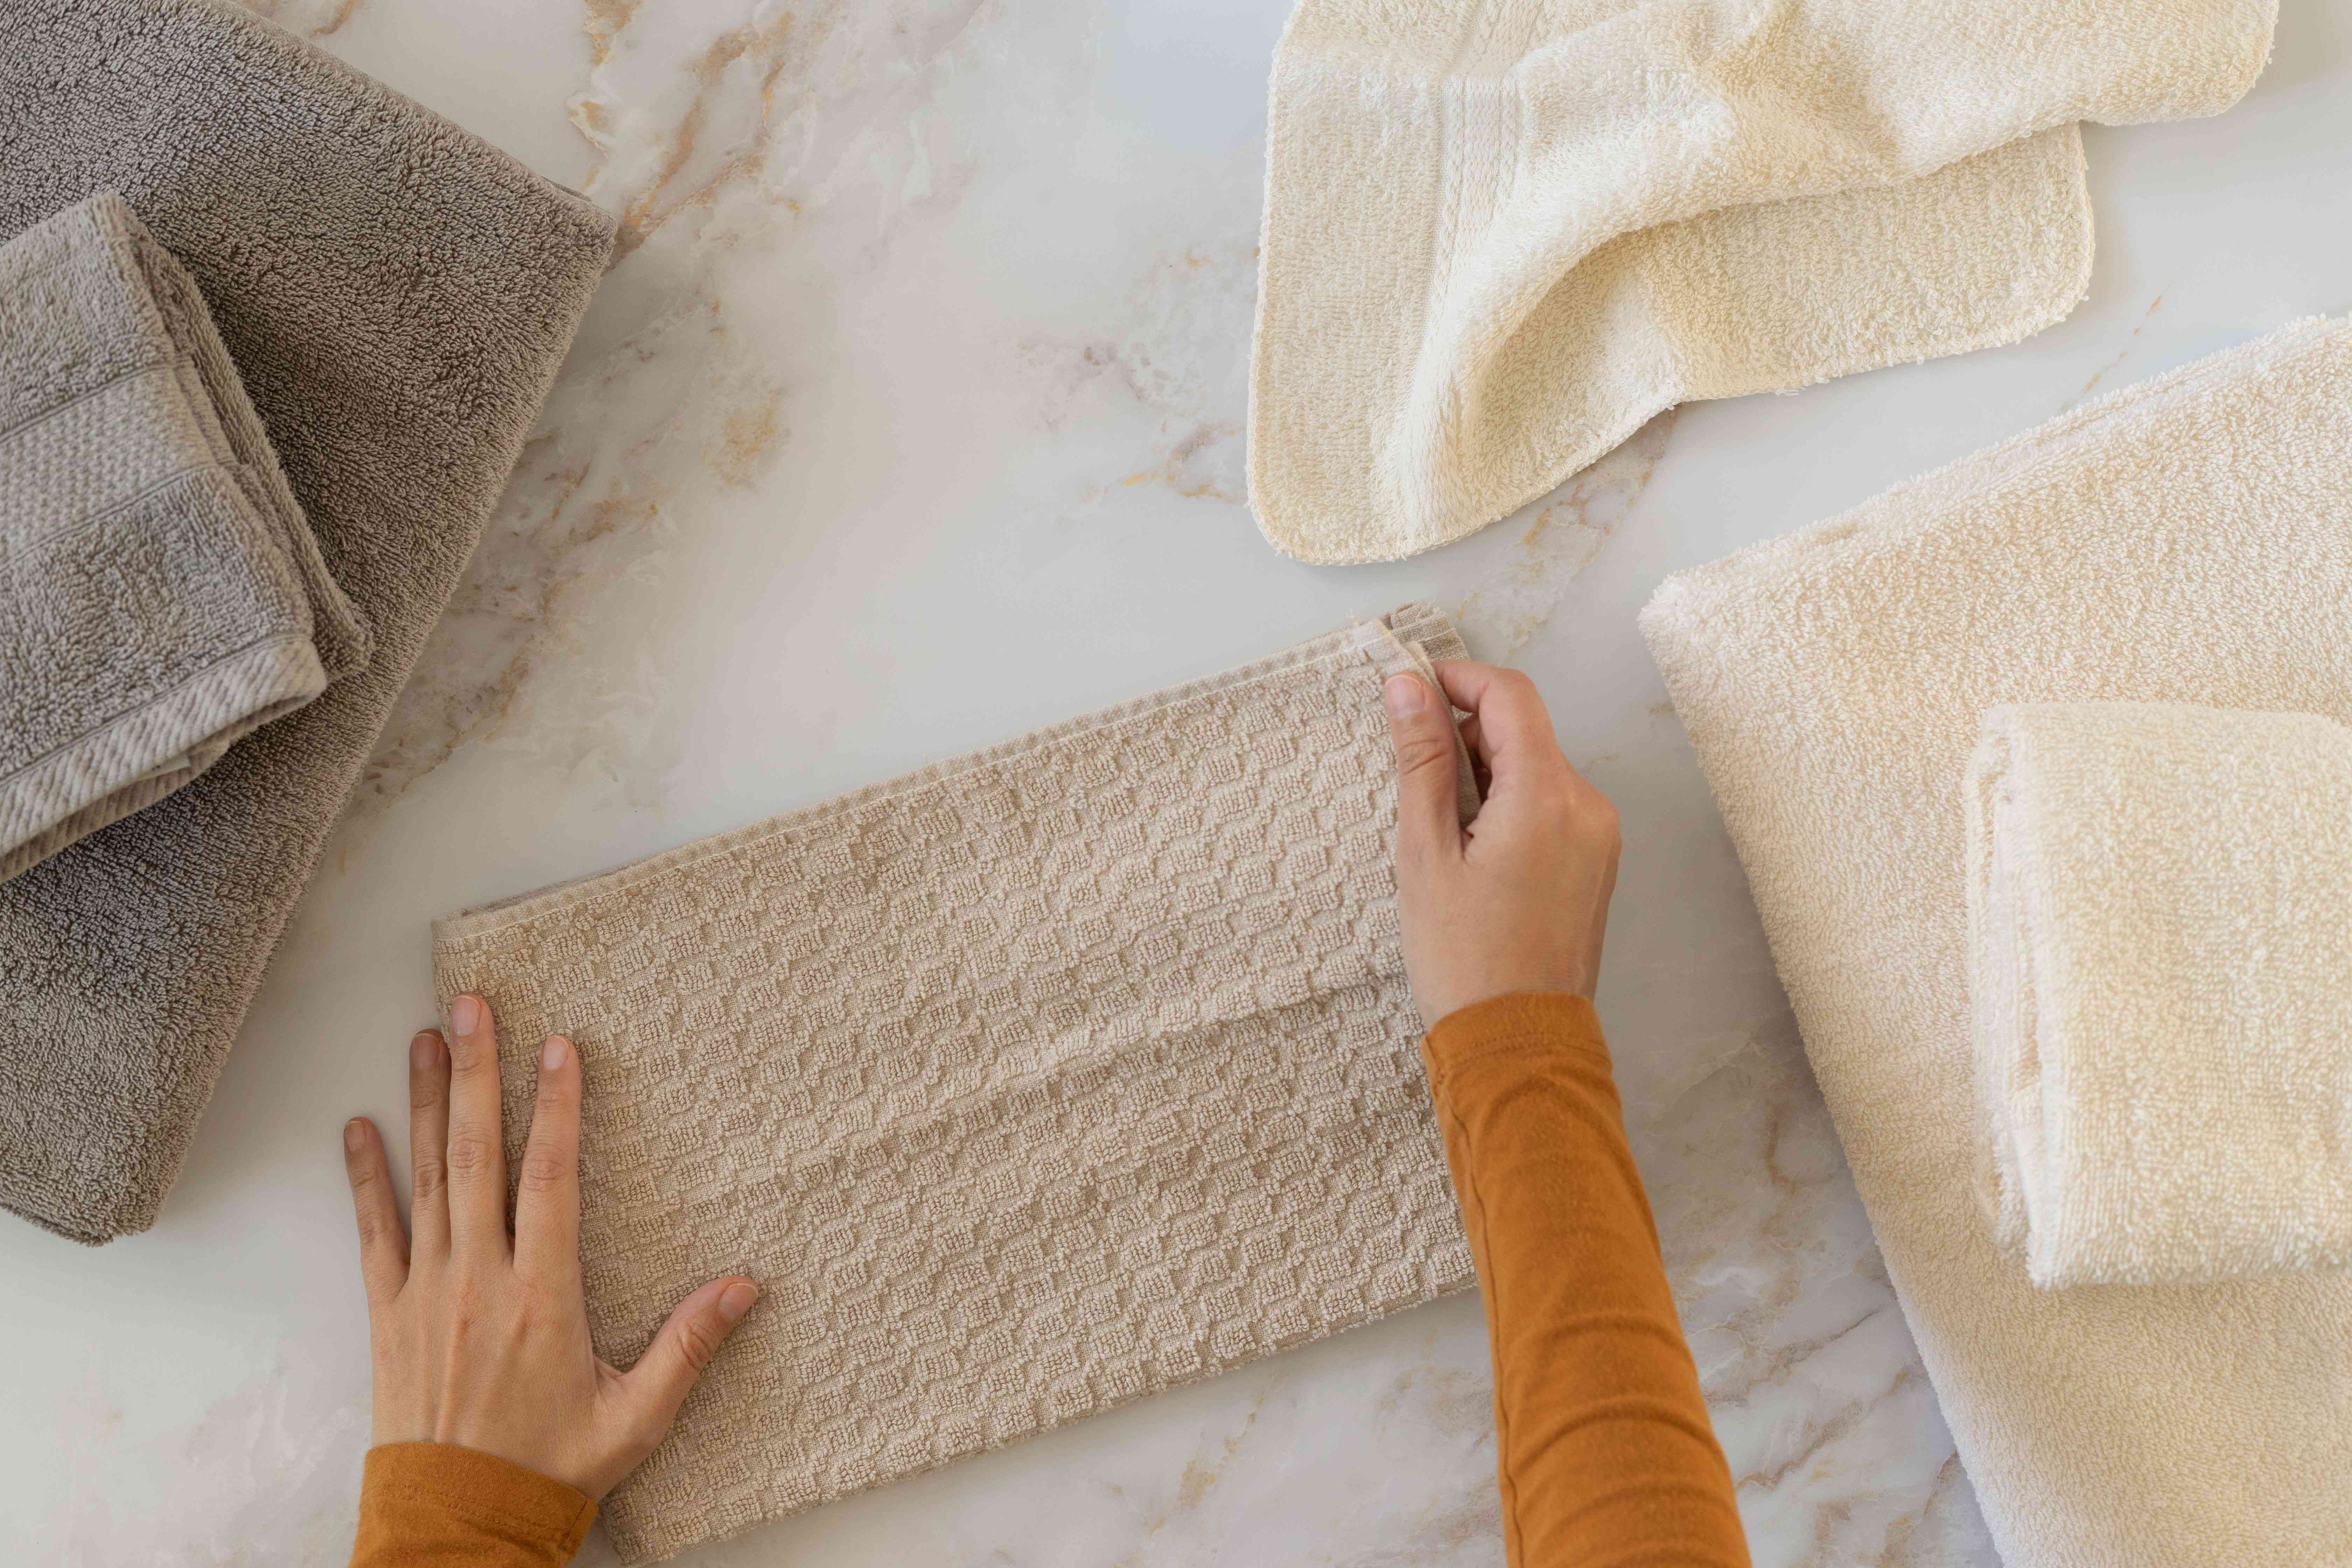 Cream, tan and gray towels sorted by size